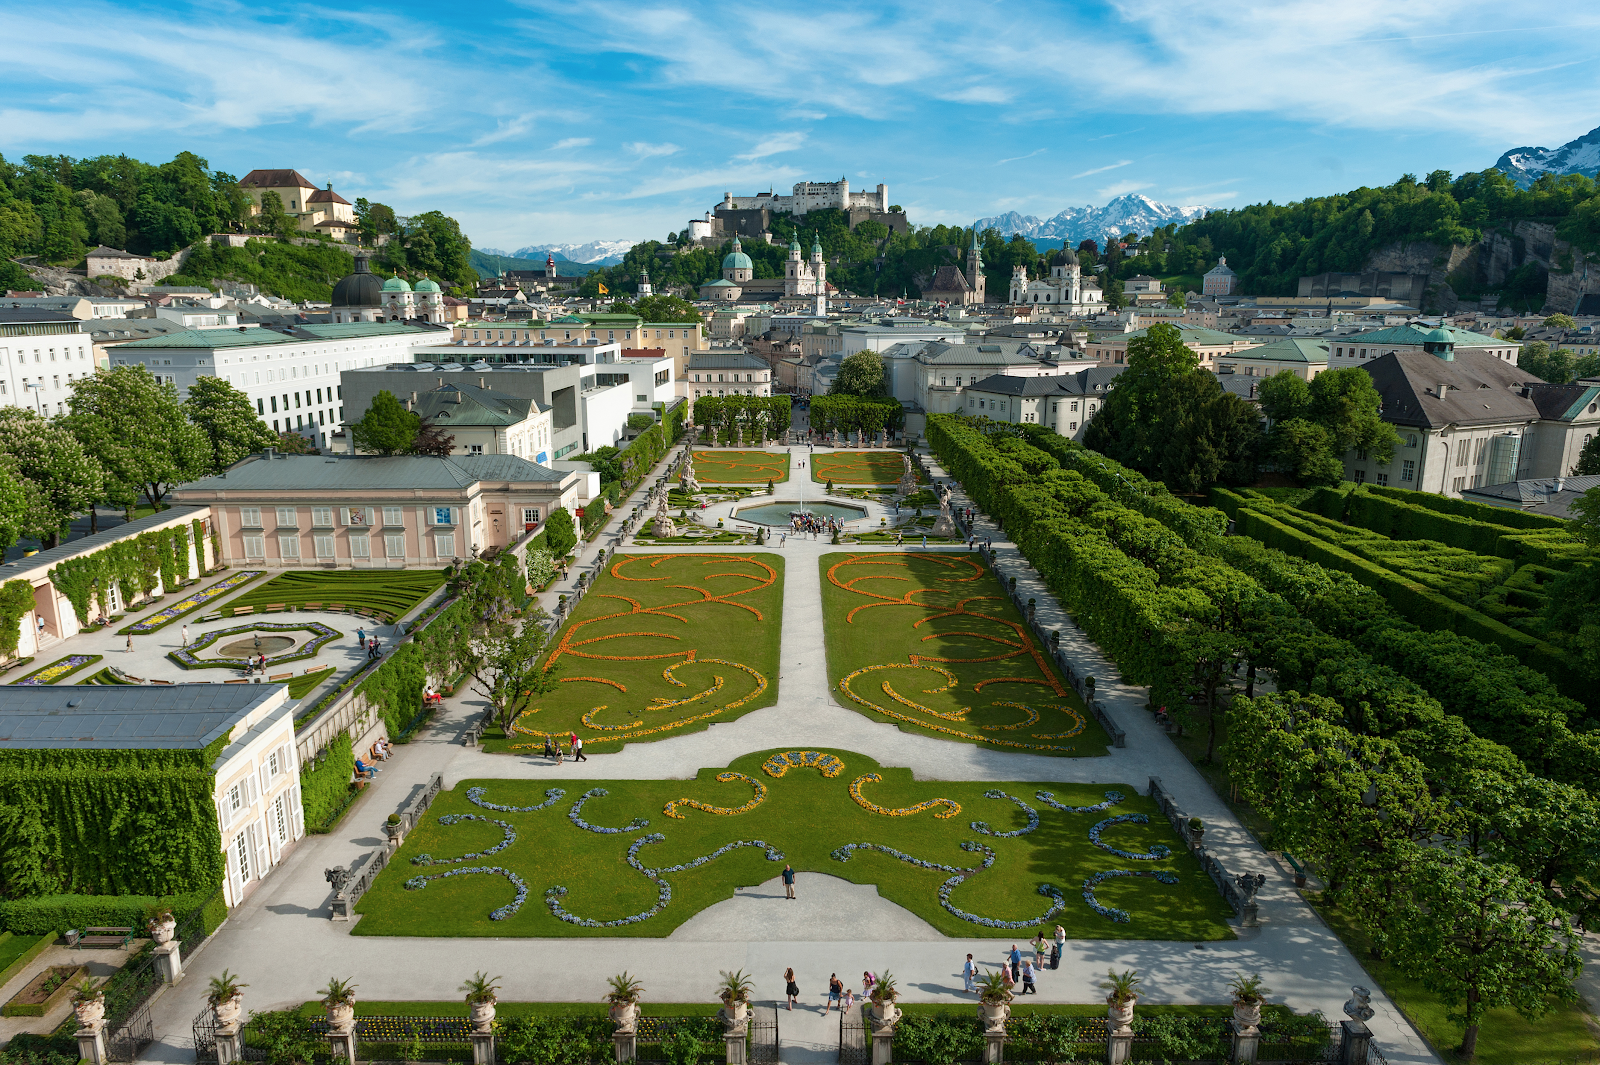 SAVE THE DATE: International Data Week 2023: A Festival of Data, 23–26 October 2023, Salzburg, Austria